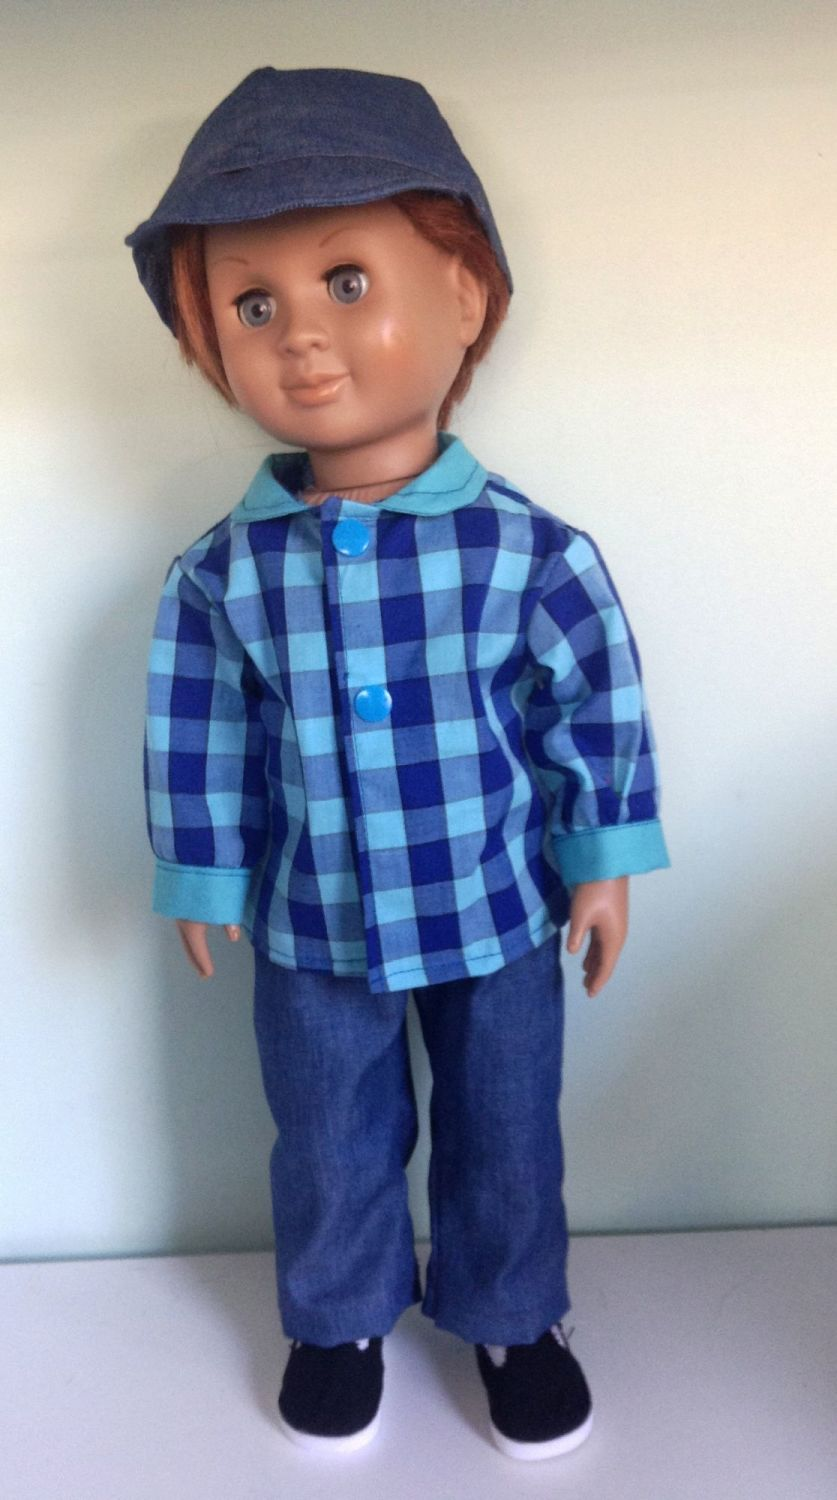 doll's jeans, shirt and cap to fit a 18 inch boy doll